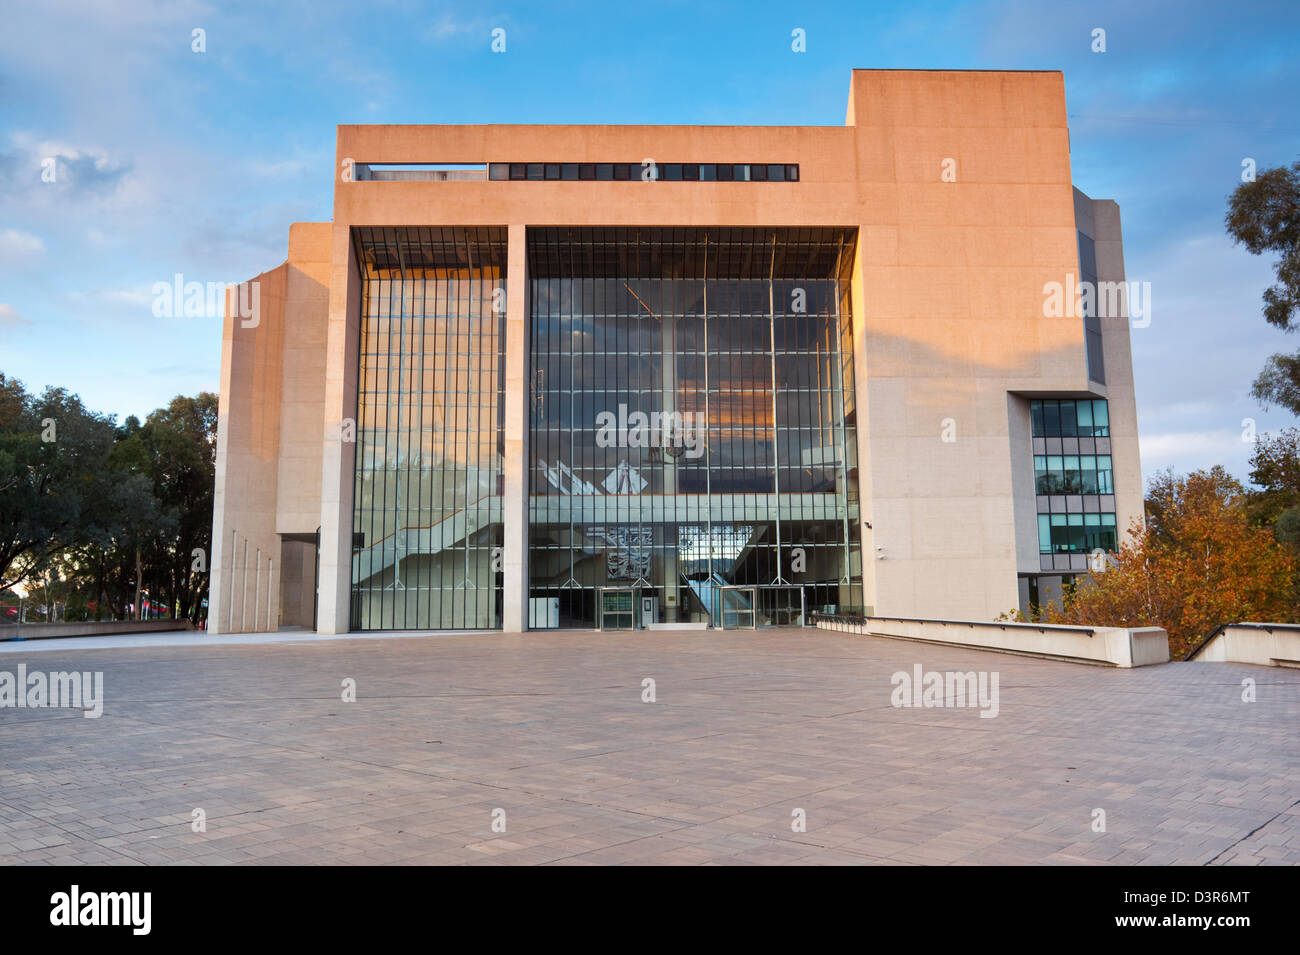 High Court of Australia building. Canberra, Australian Capital Territory (ACT), Australia - Stock Image